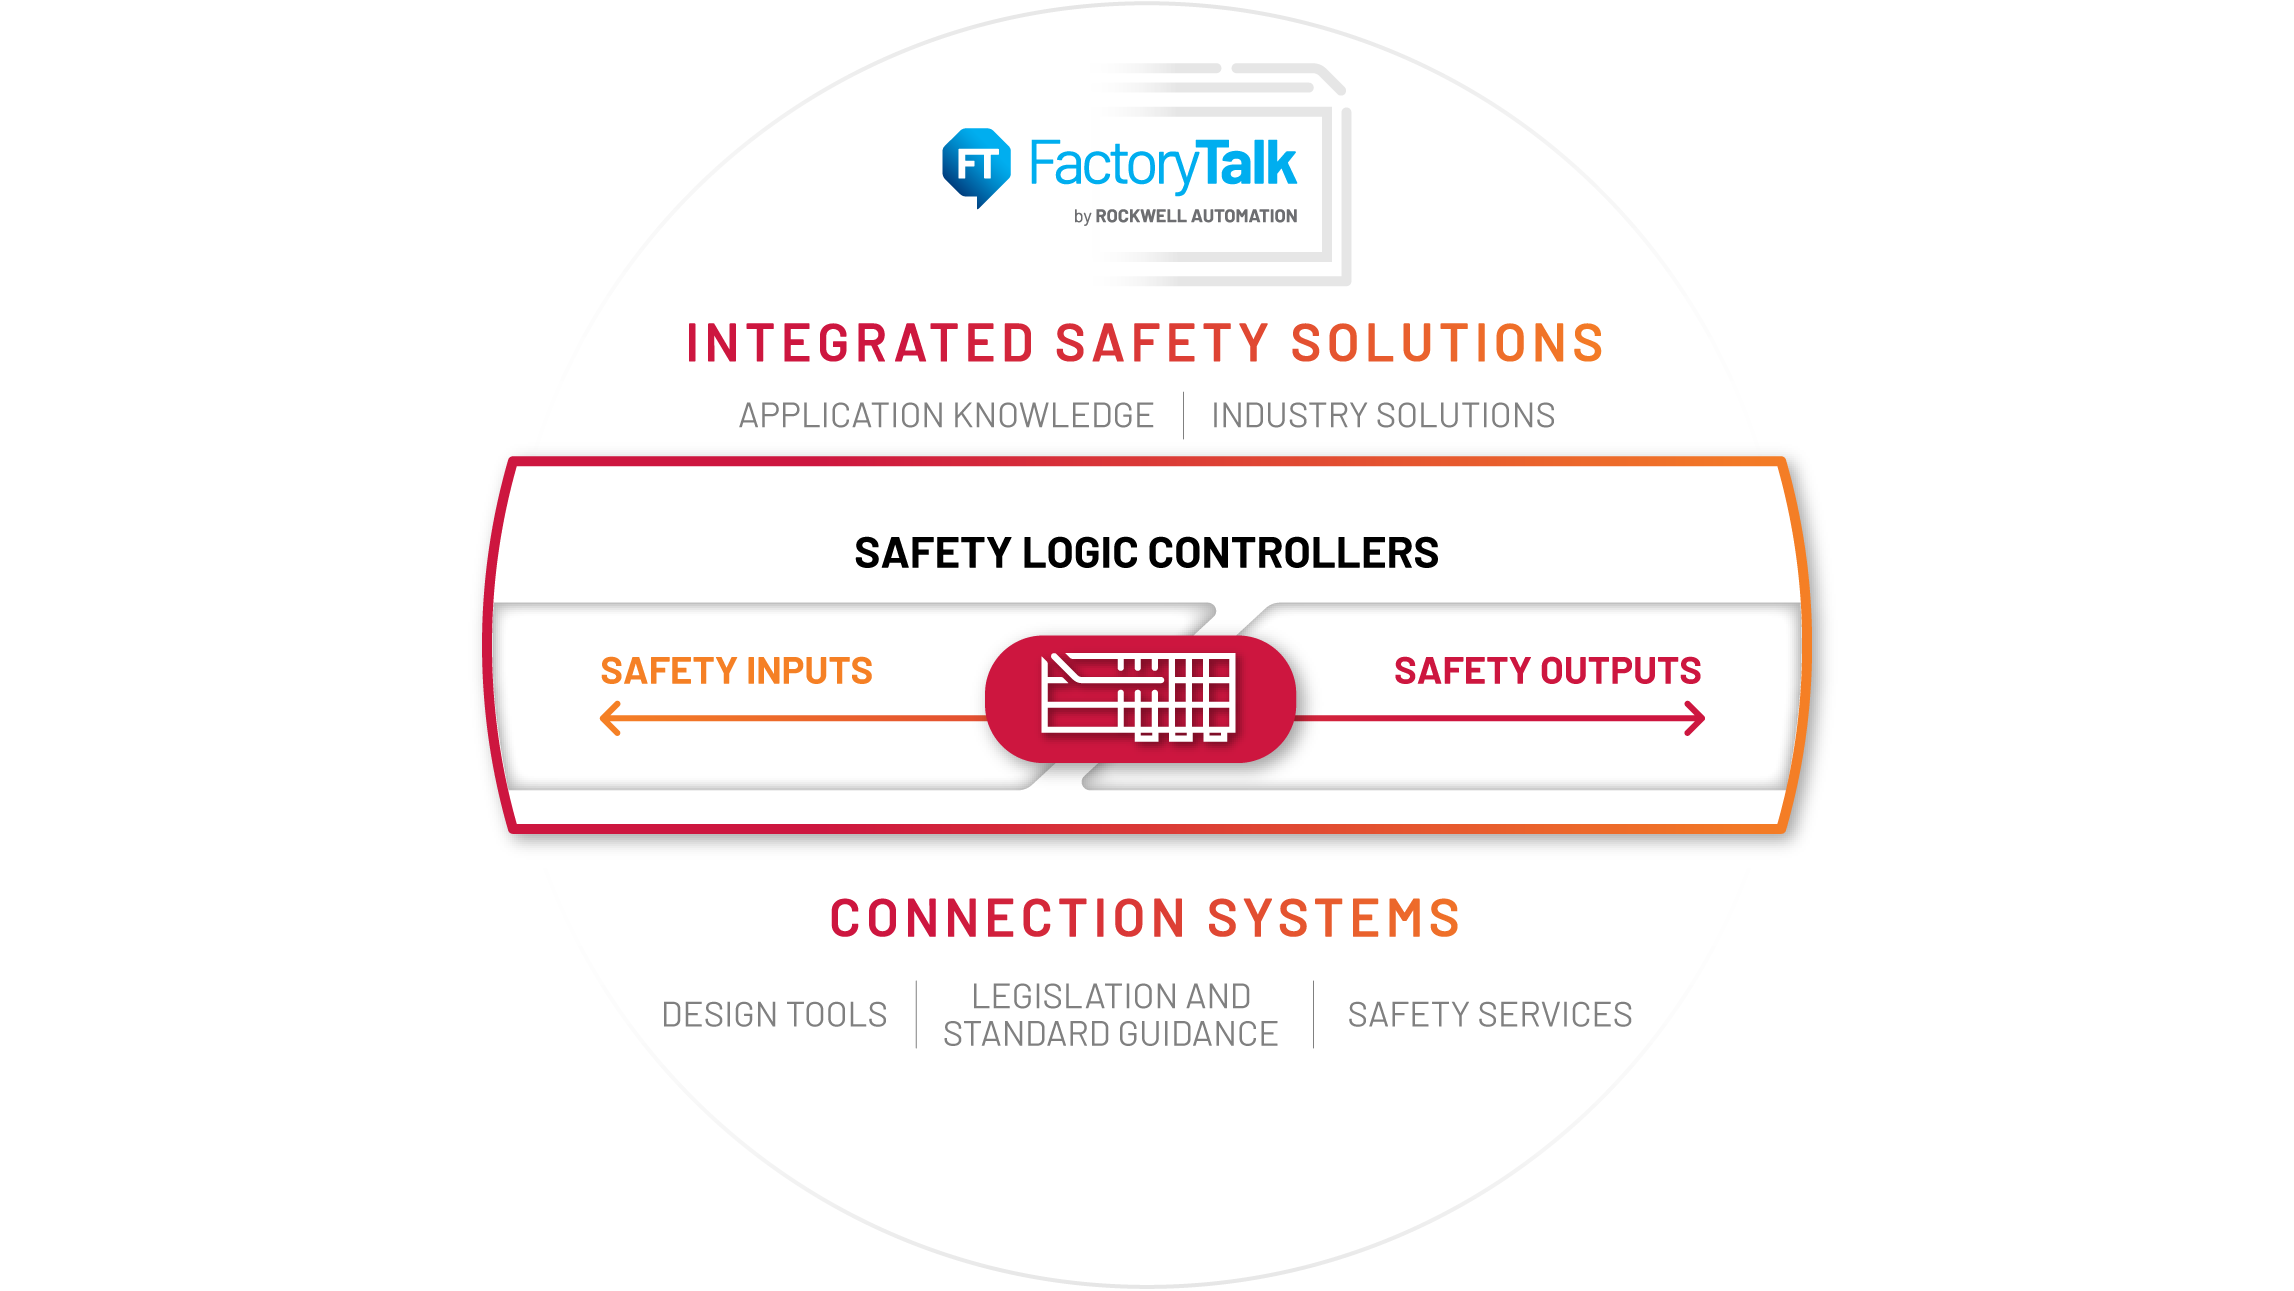 diagram illustrating integrated safety solutions with safety logic controllers